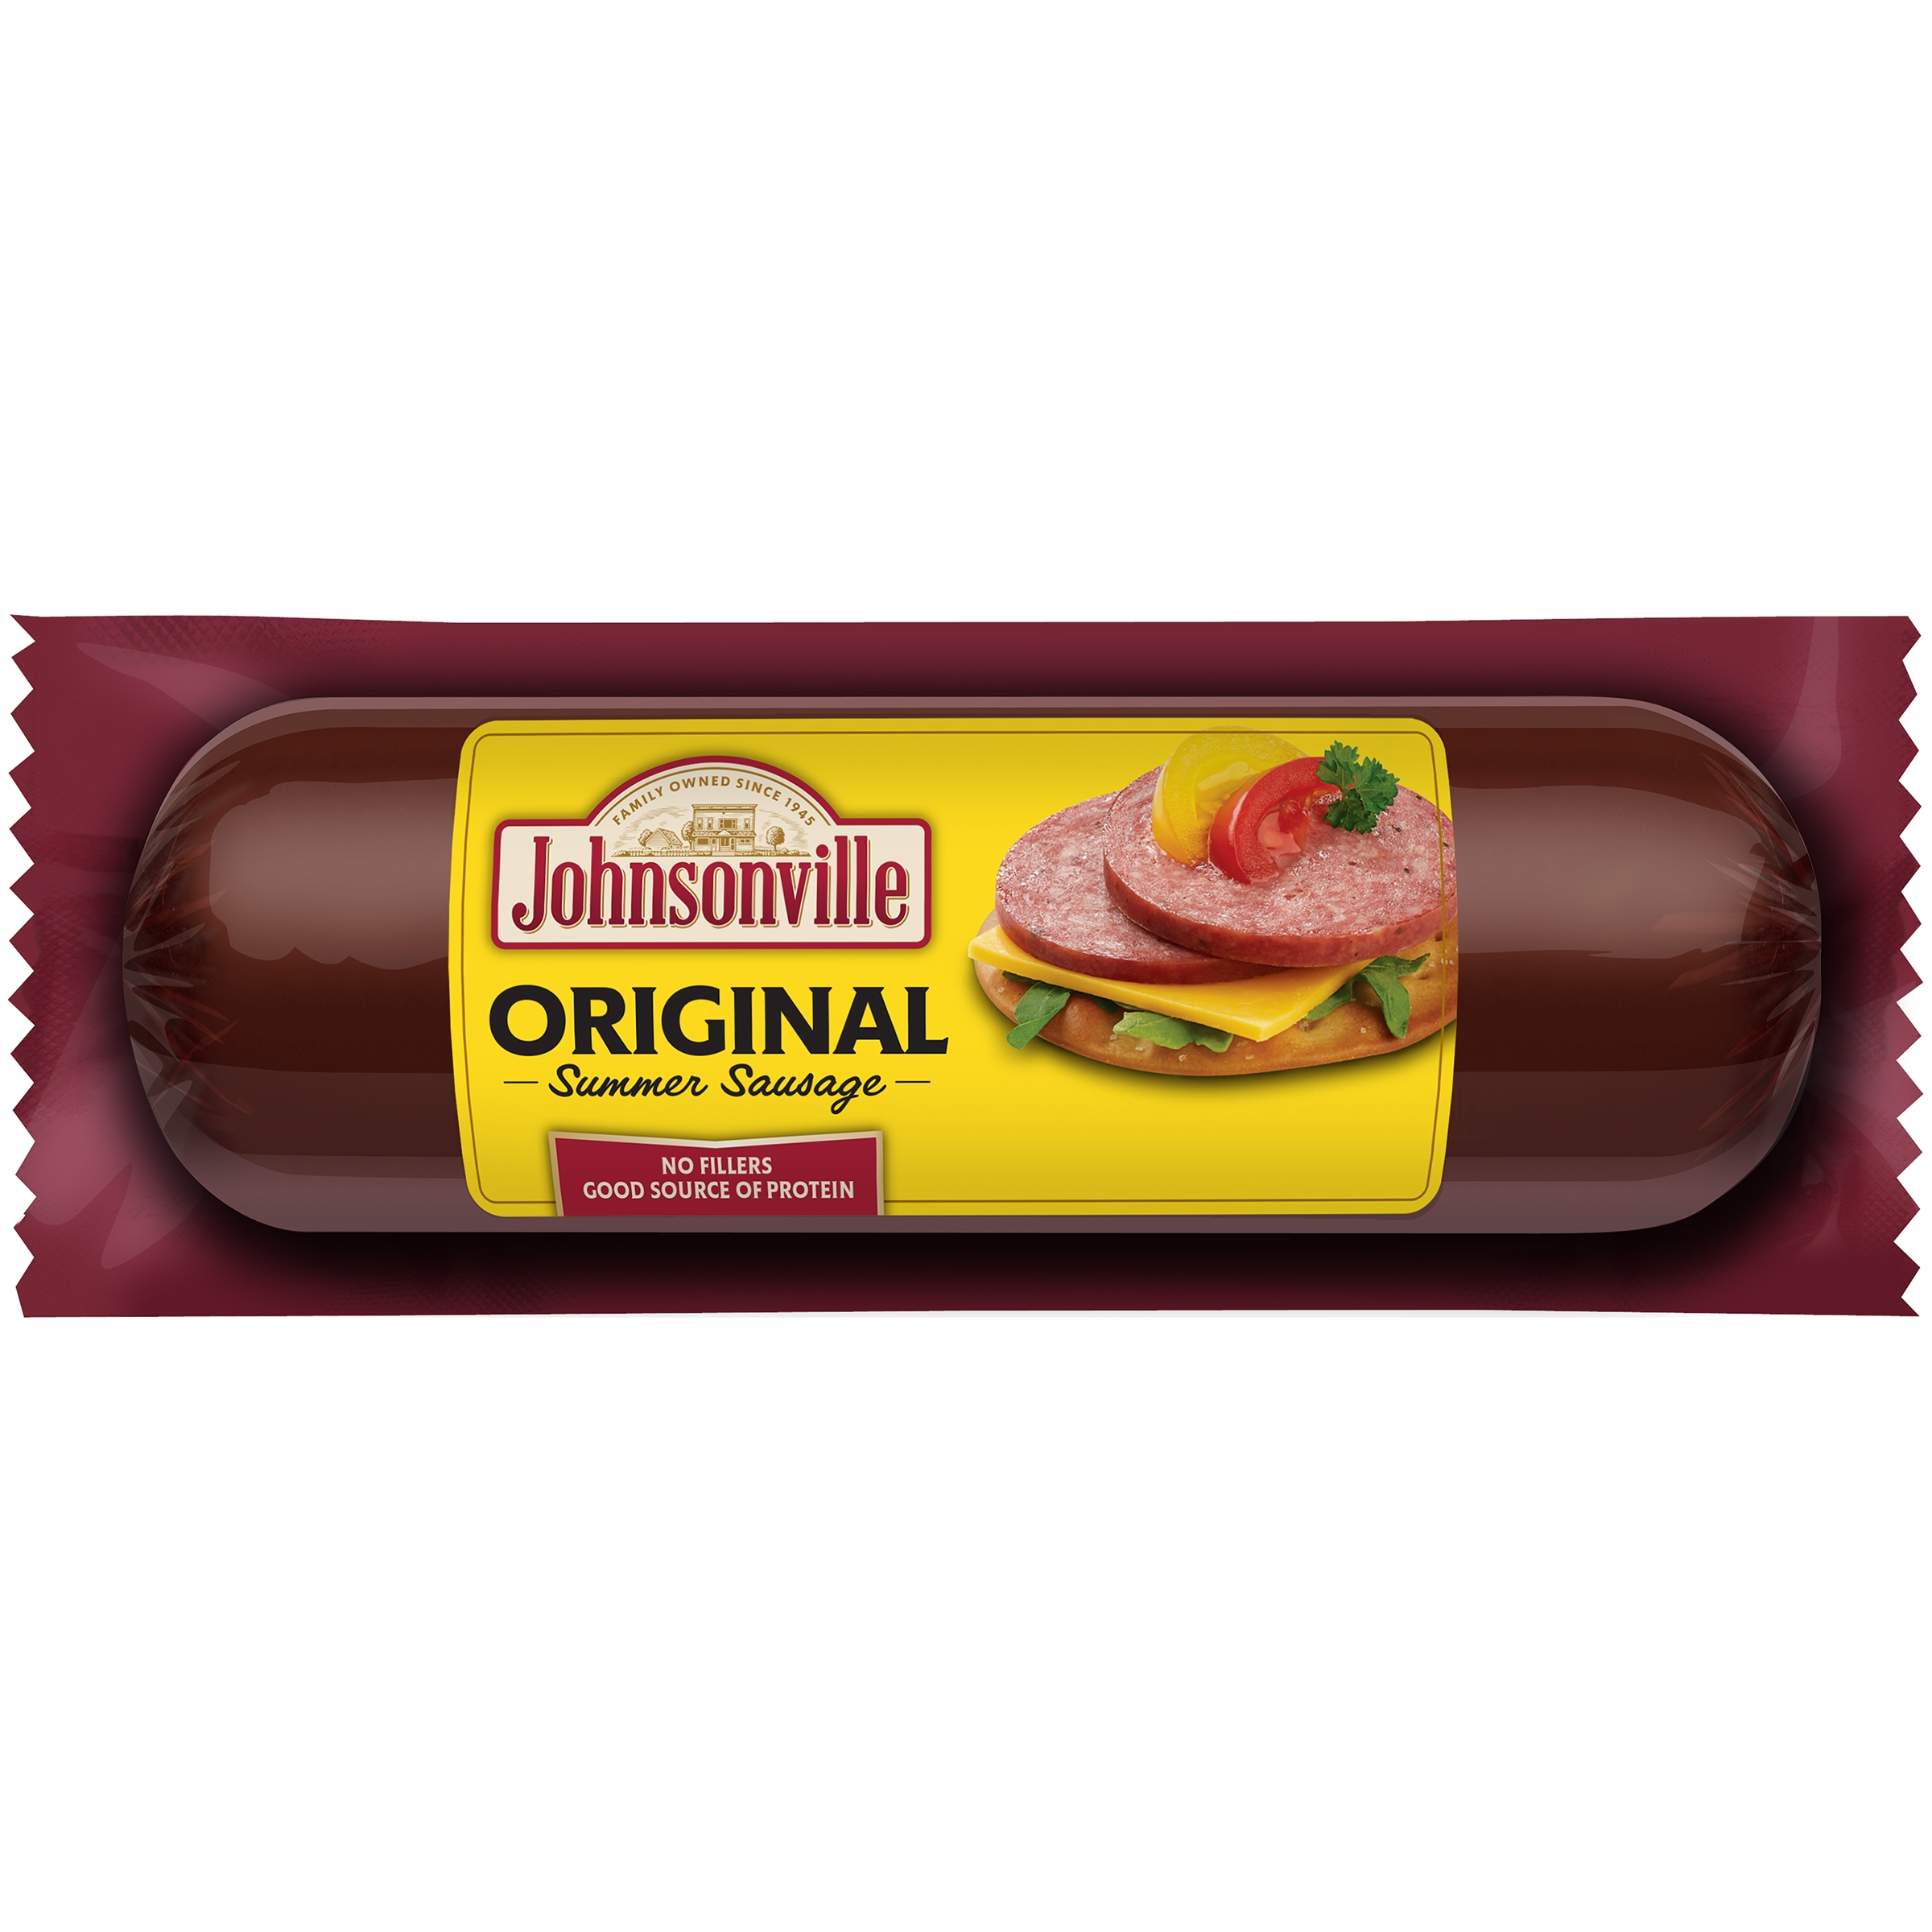 Johnsonville Original Summer Sausage 12oz chub (101442)